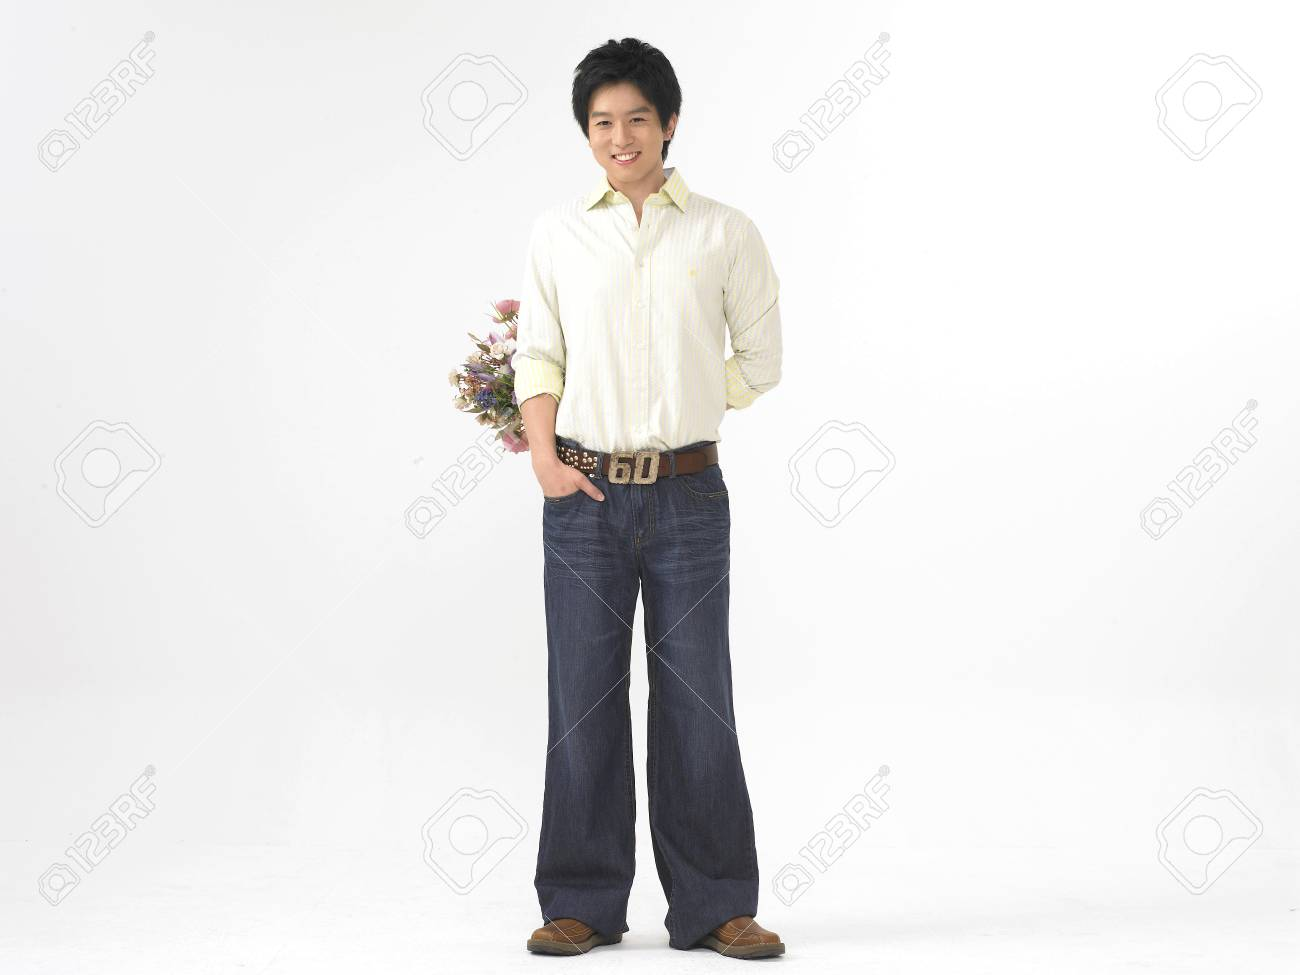 Asian Model Young Men Fashion Isolated In White Wearing Business